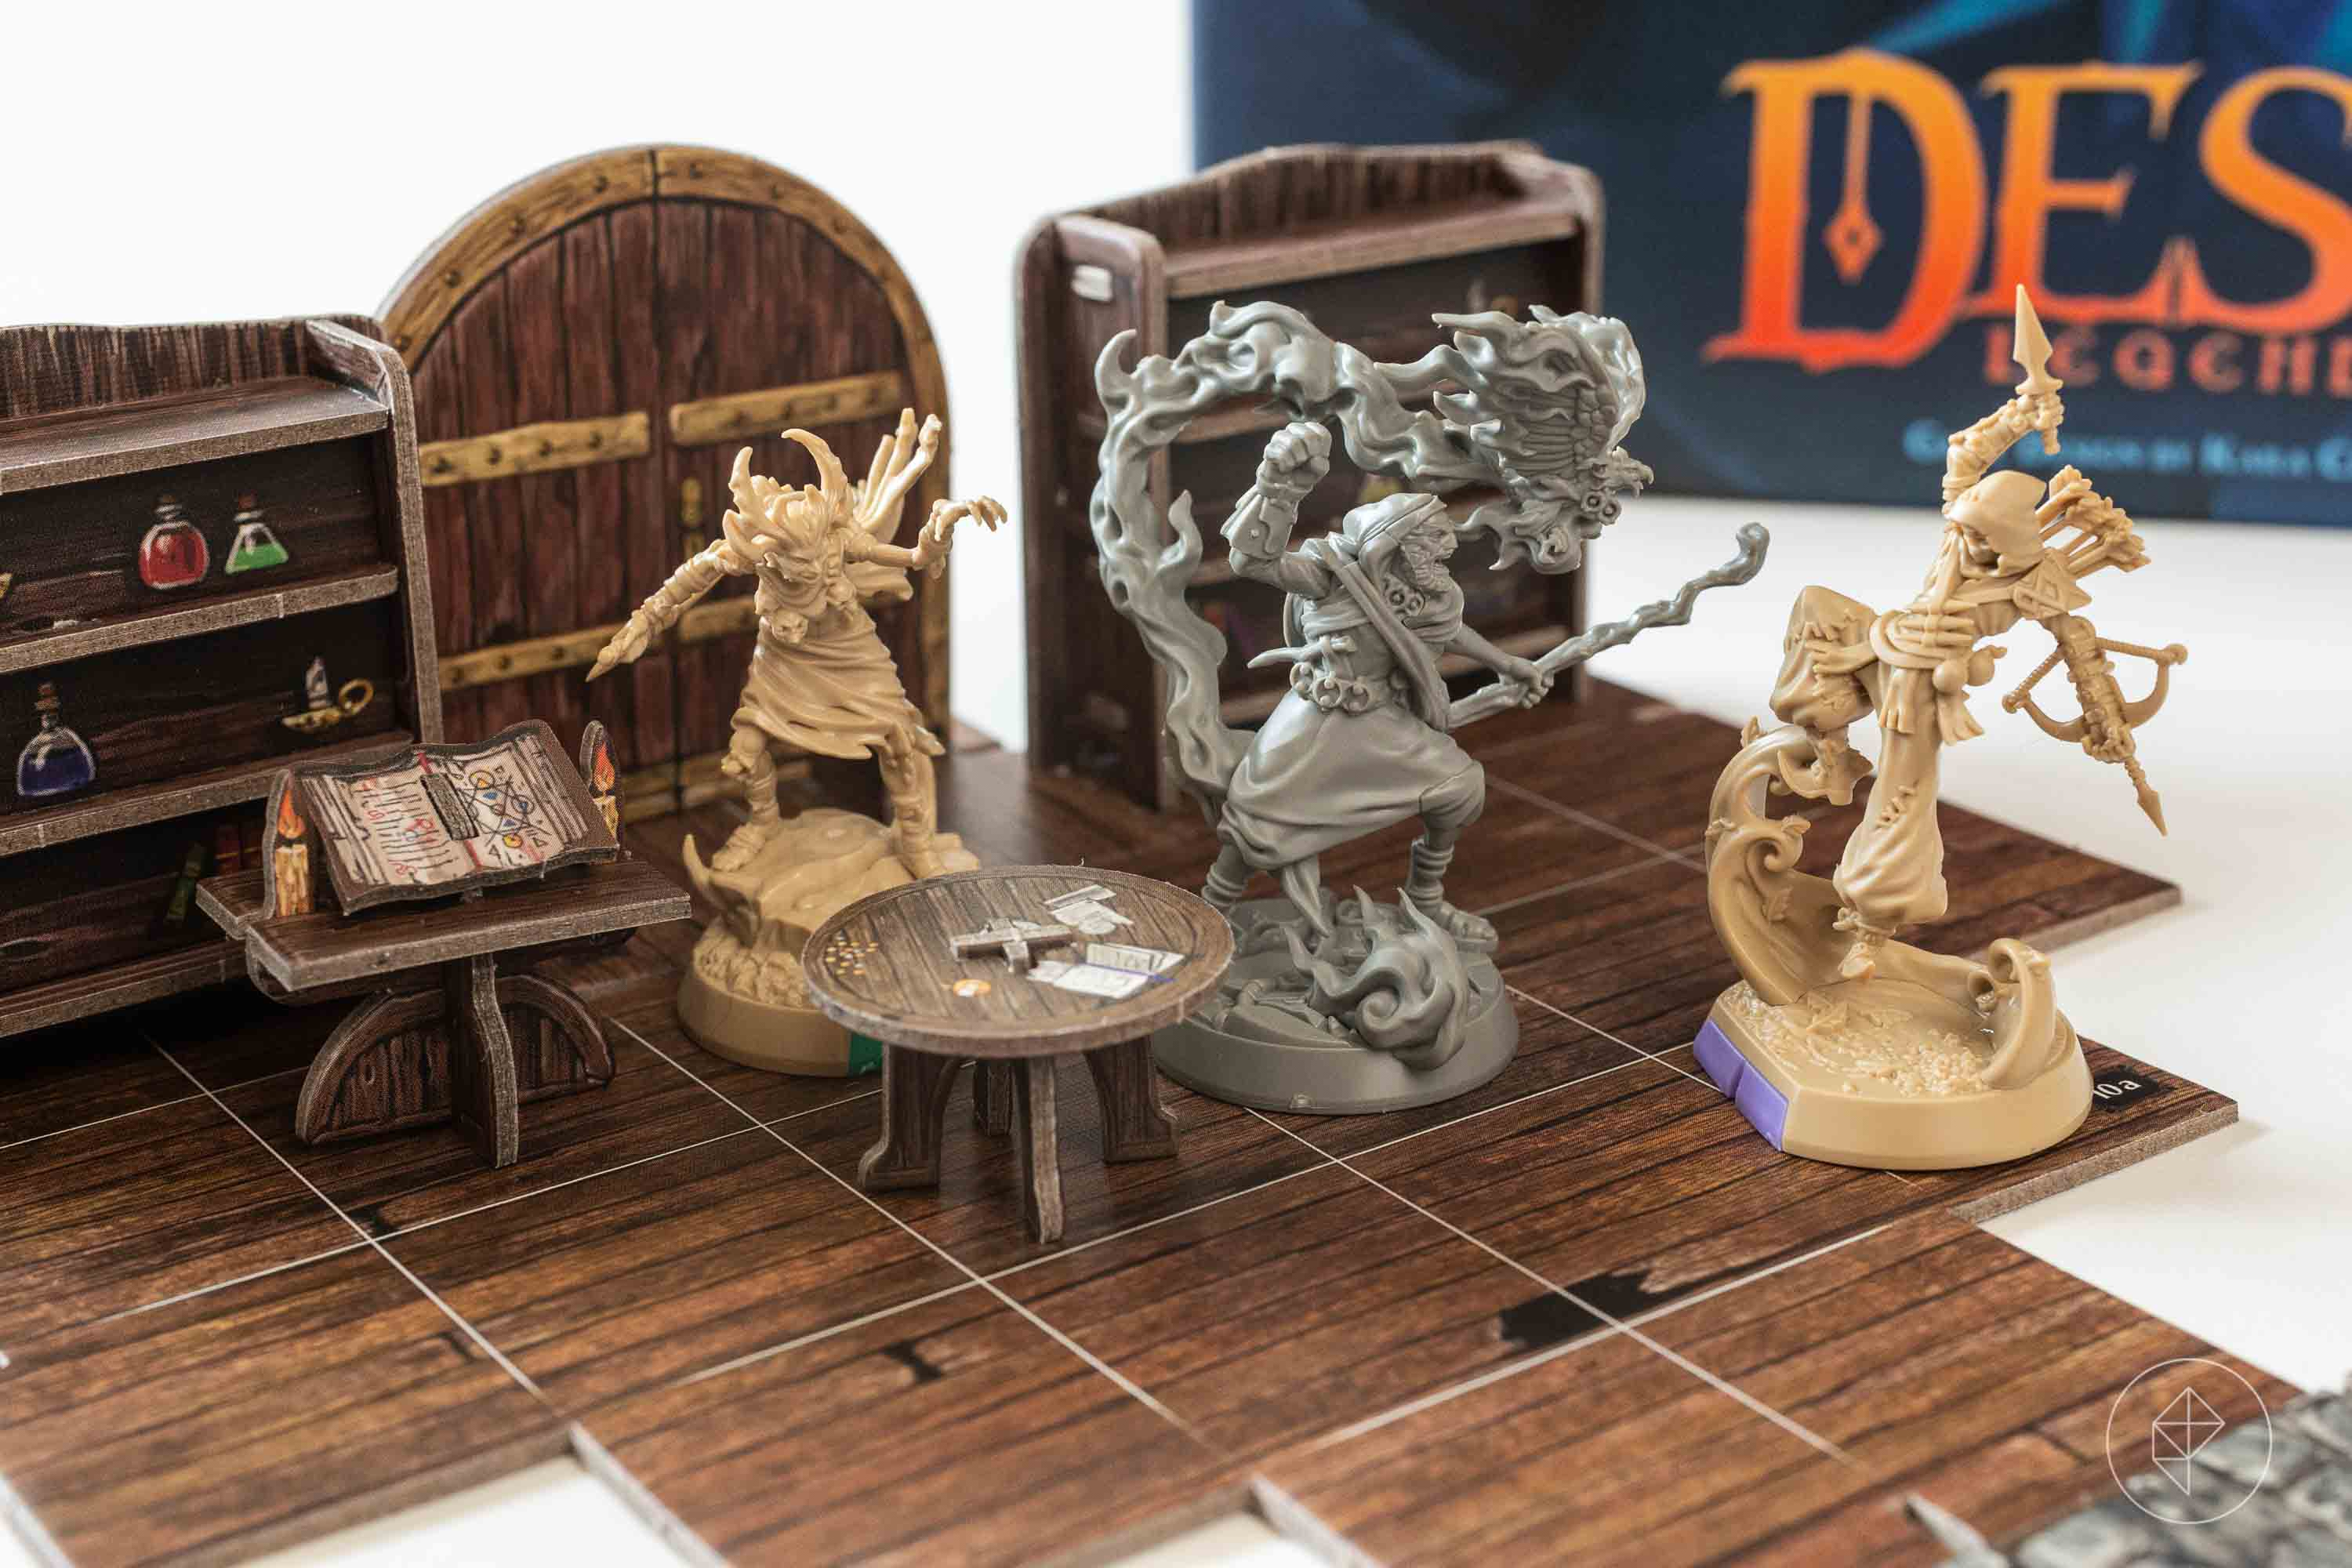 A wizard miniature casts a spell against a pirate and a hag in a library.